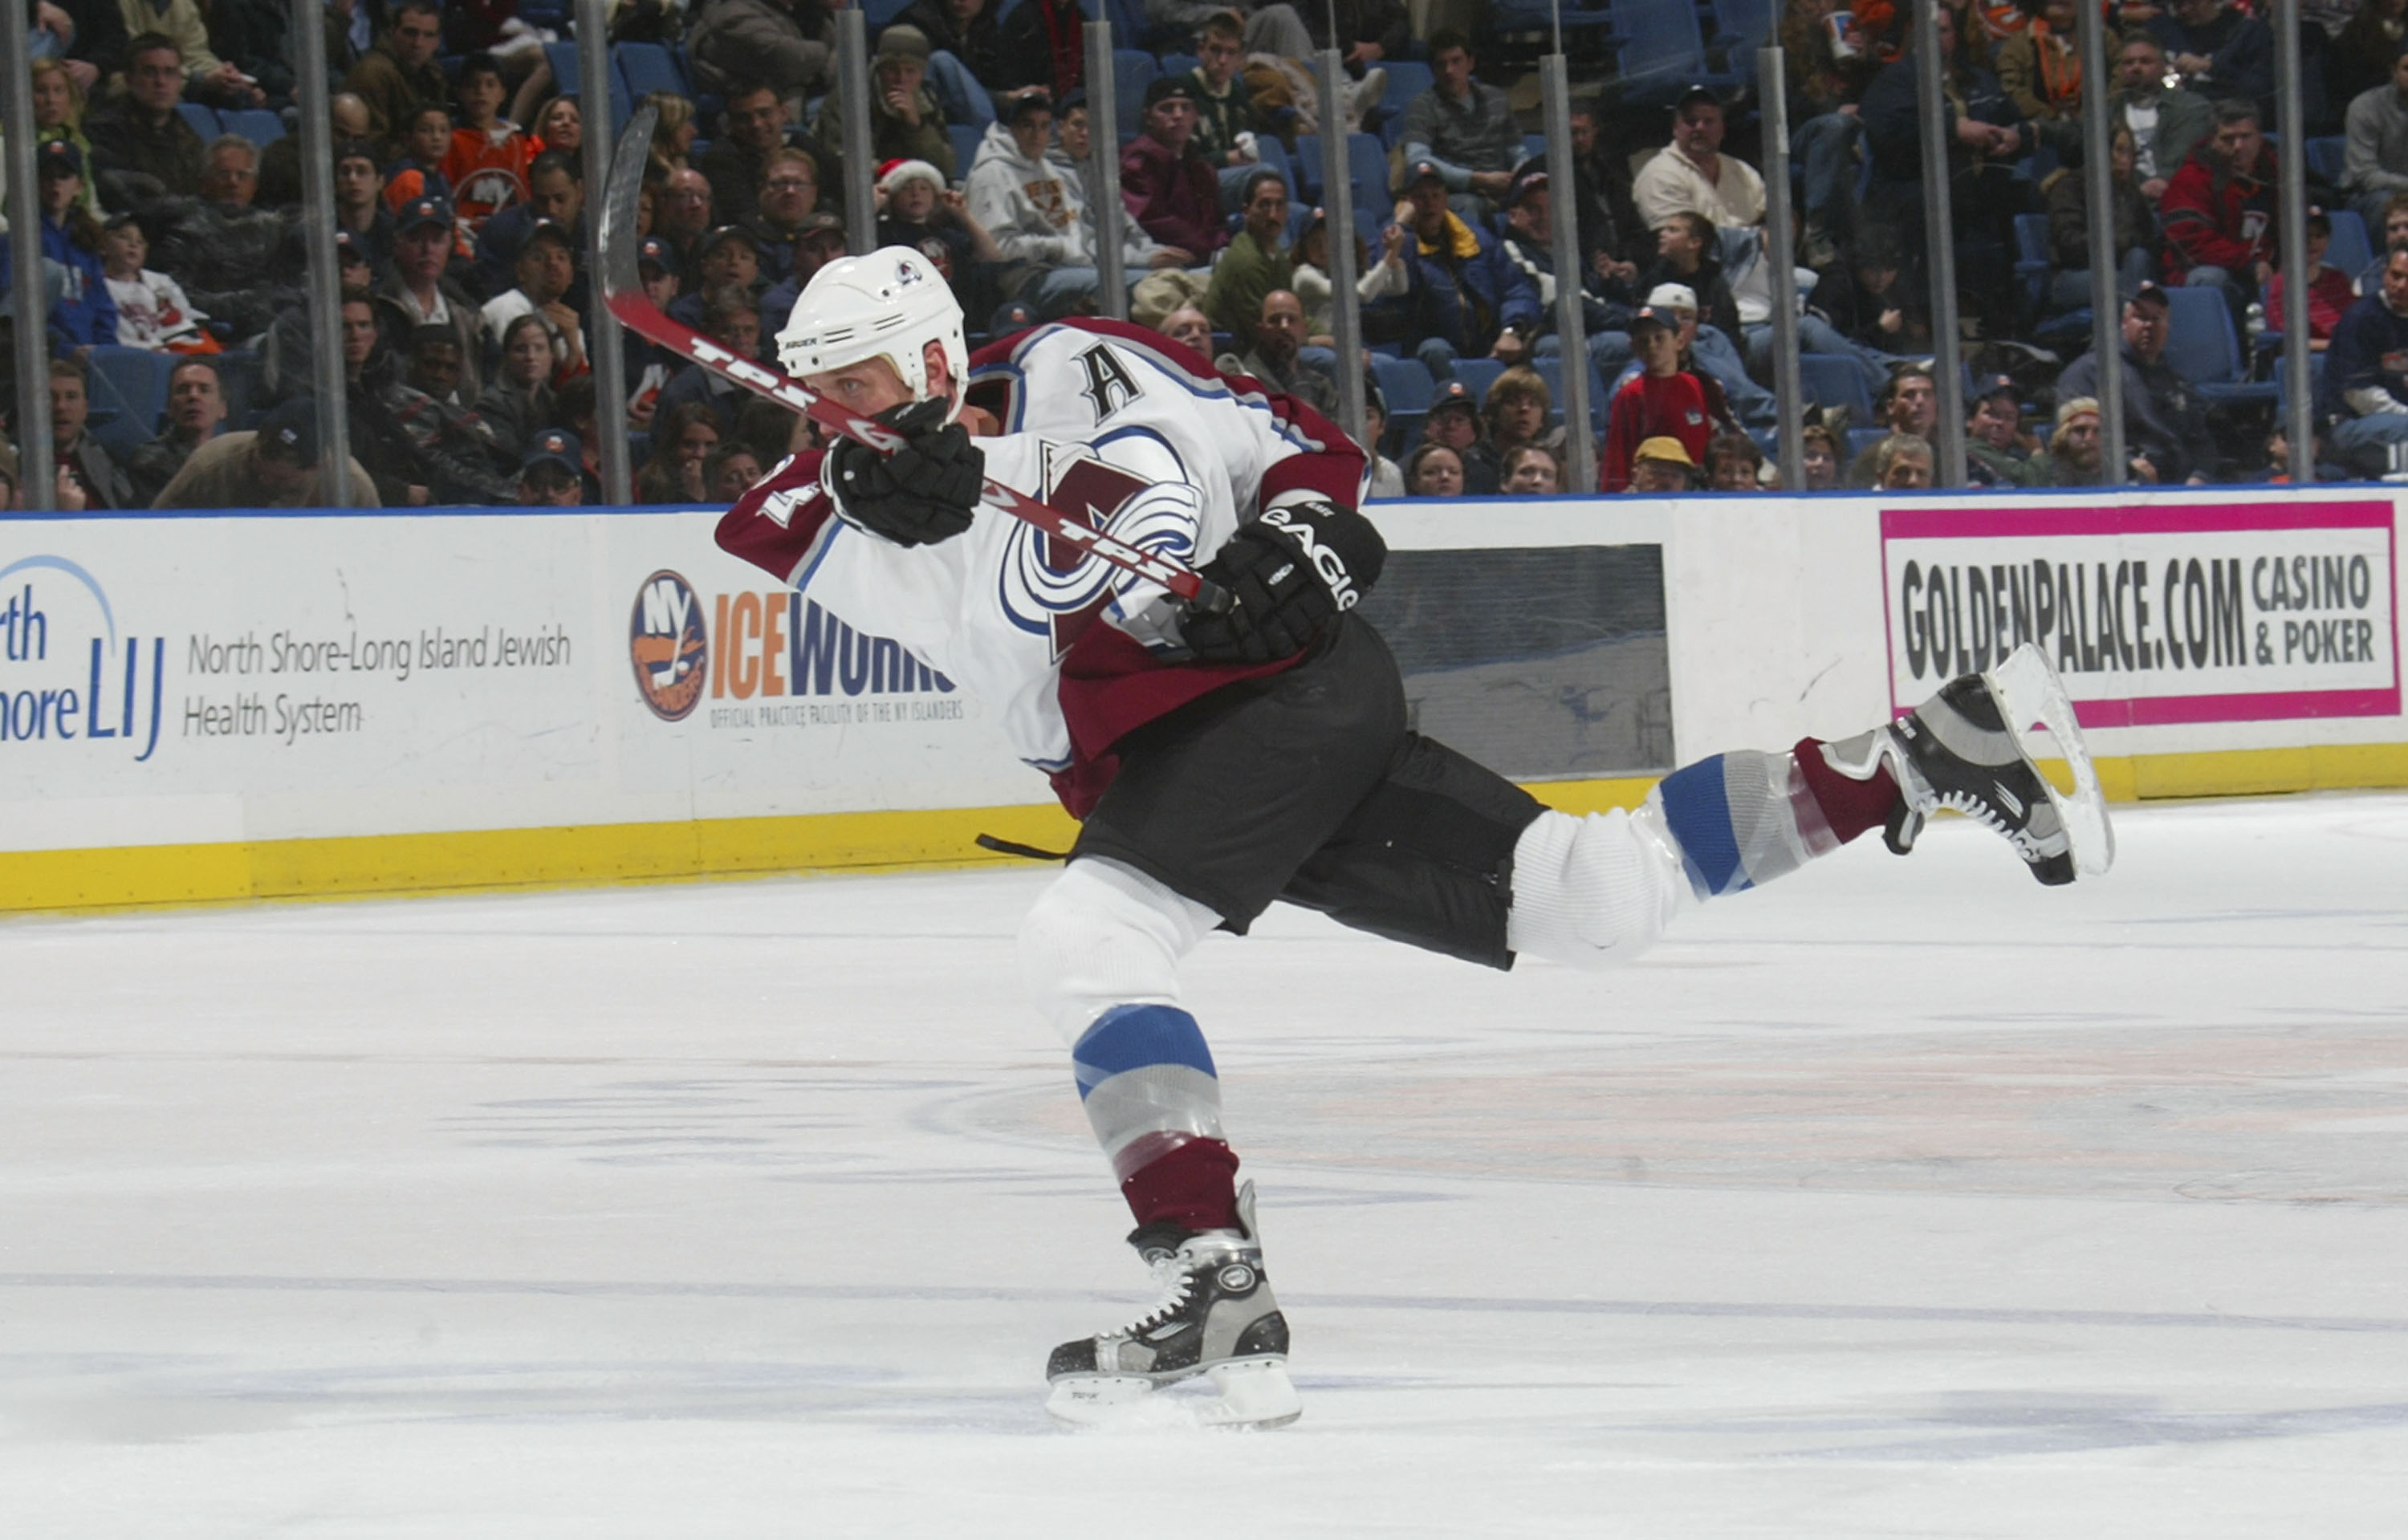 Rob Blake #4 of the Colorado Avalanche fires a shot from the point against the New York Islanders at the Nassau Coliseum on December 17, 2005 in Uniondale, New York. The Isles defeated the Avalanche 5-4. (Photo by Bruce Bennett/Getty Images)